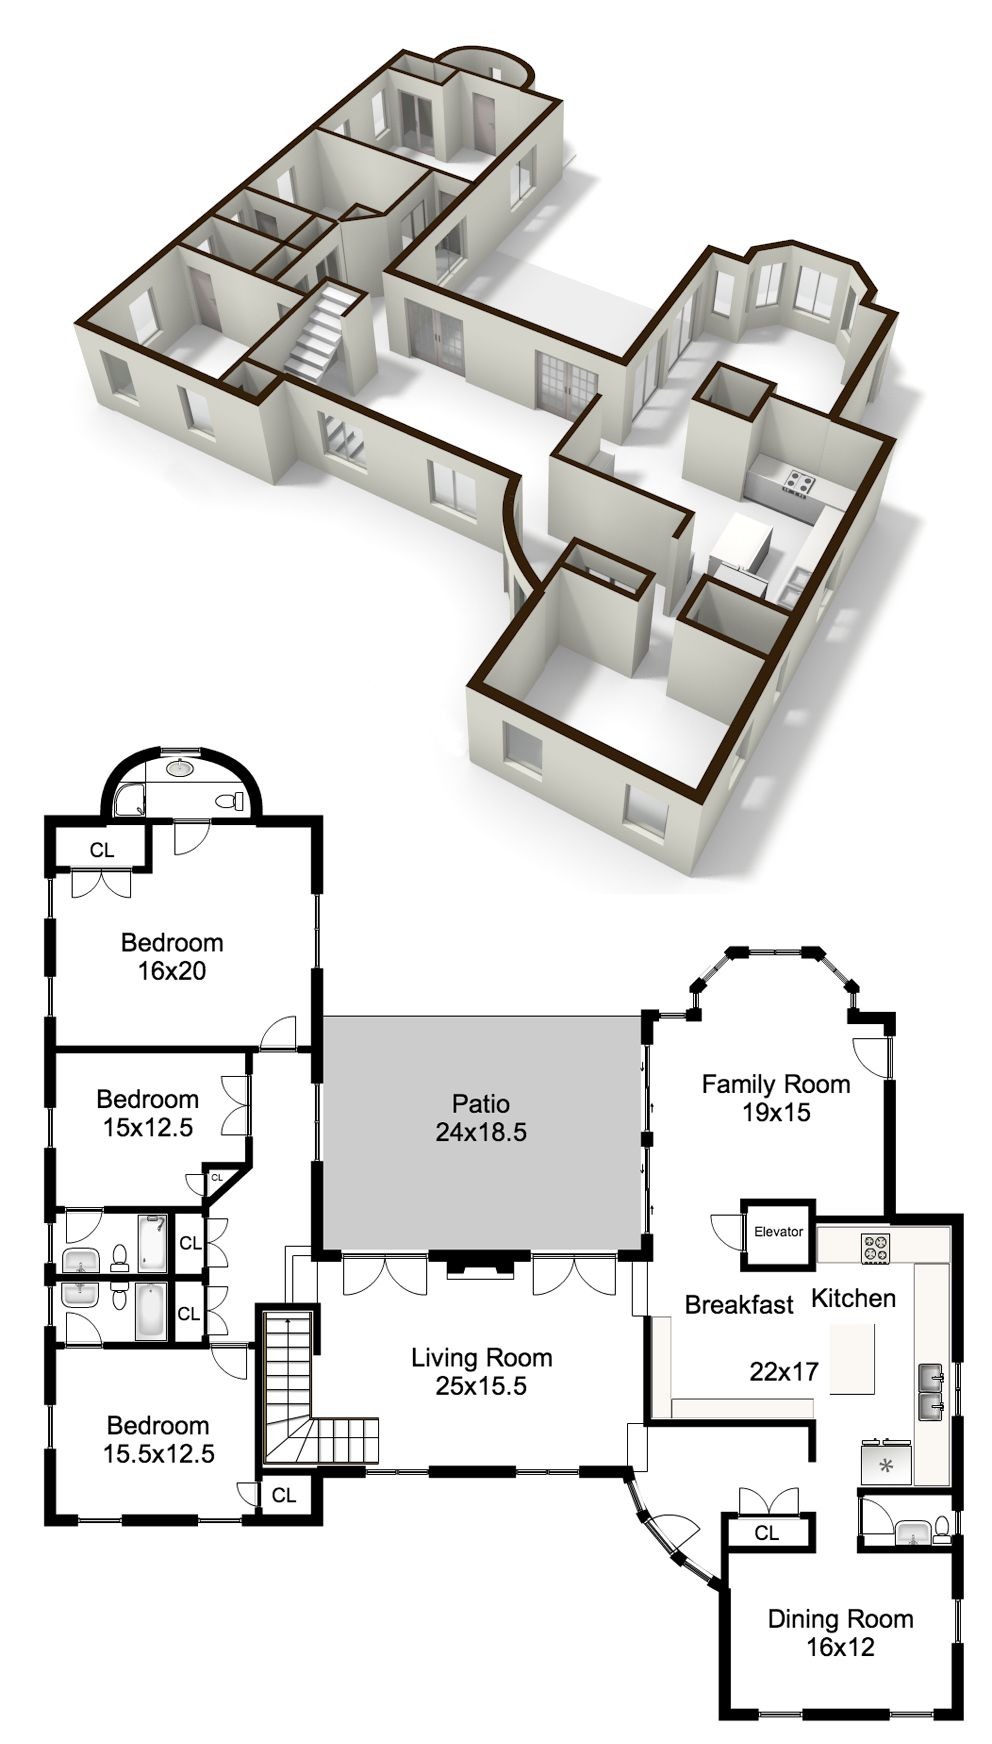 Nice Example Of A Black And White Floorplan Floorplanner Is Used Increasingly For This Type Of Plans Since We Floor Plans Create Floor Plan House Floor Plans